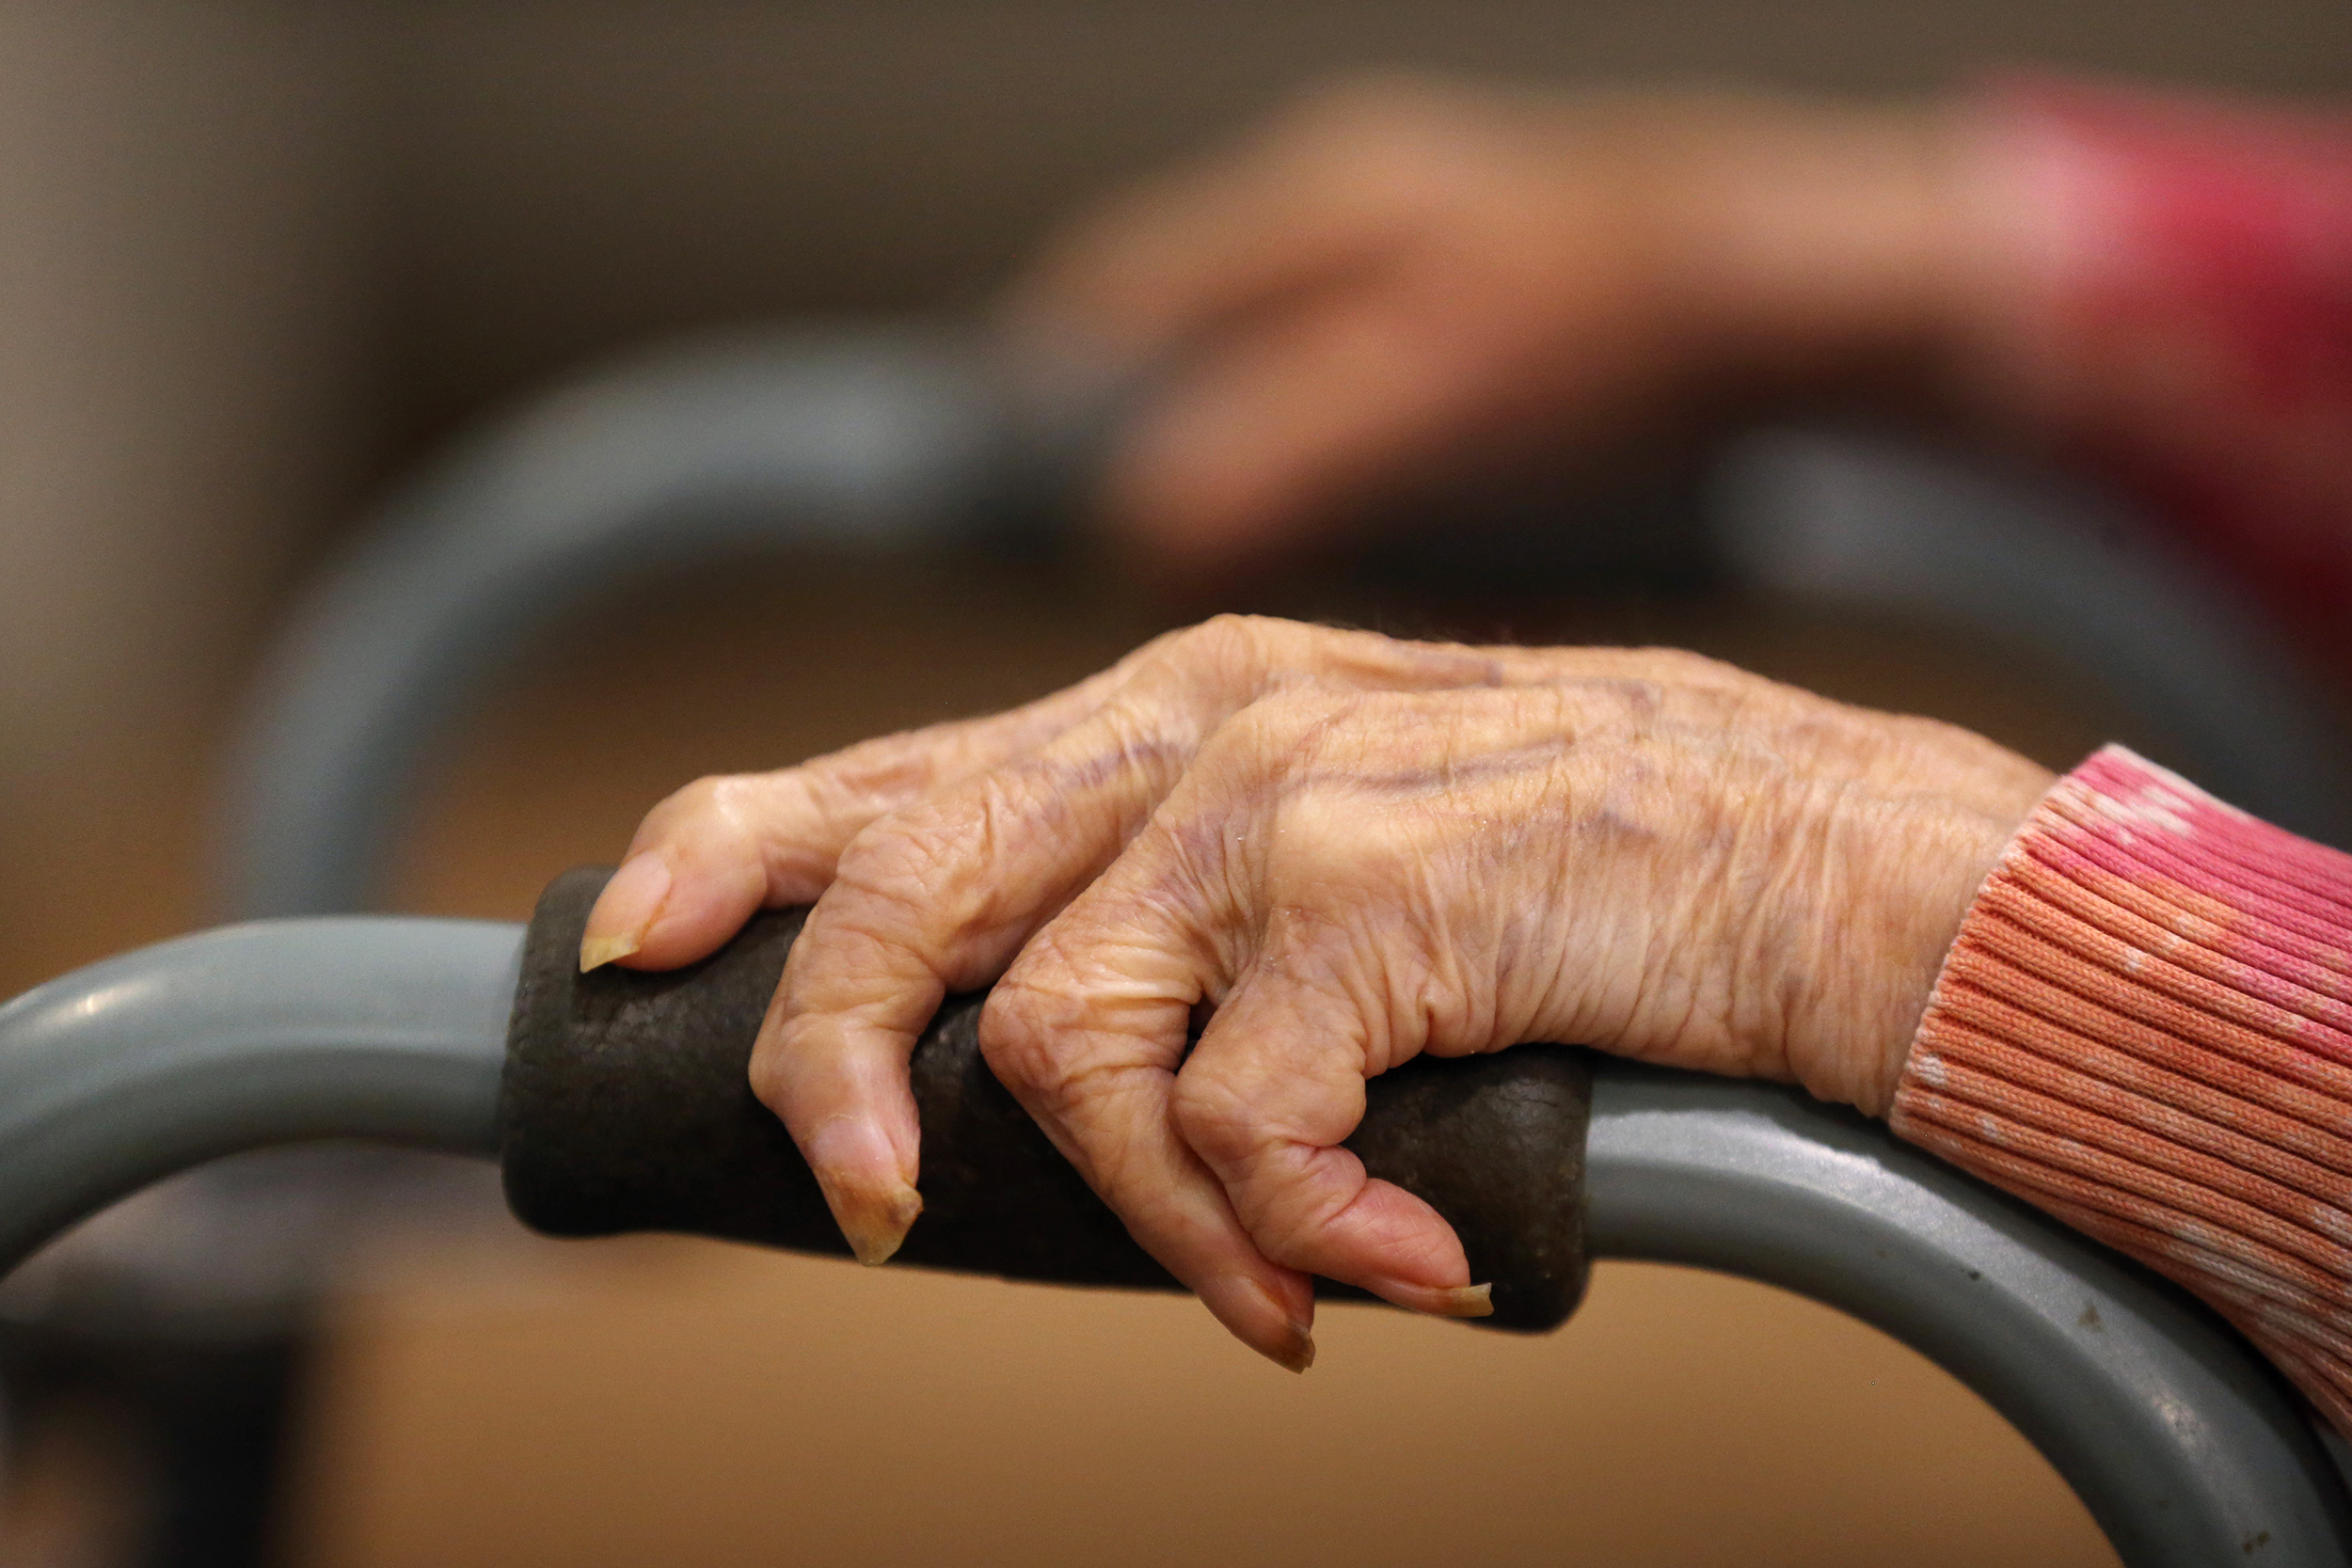 Democrats bank on voters' approval of increased aid for the elderly